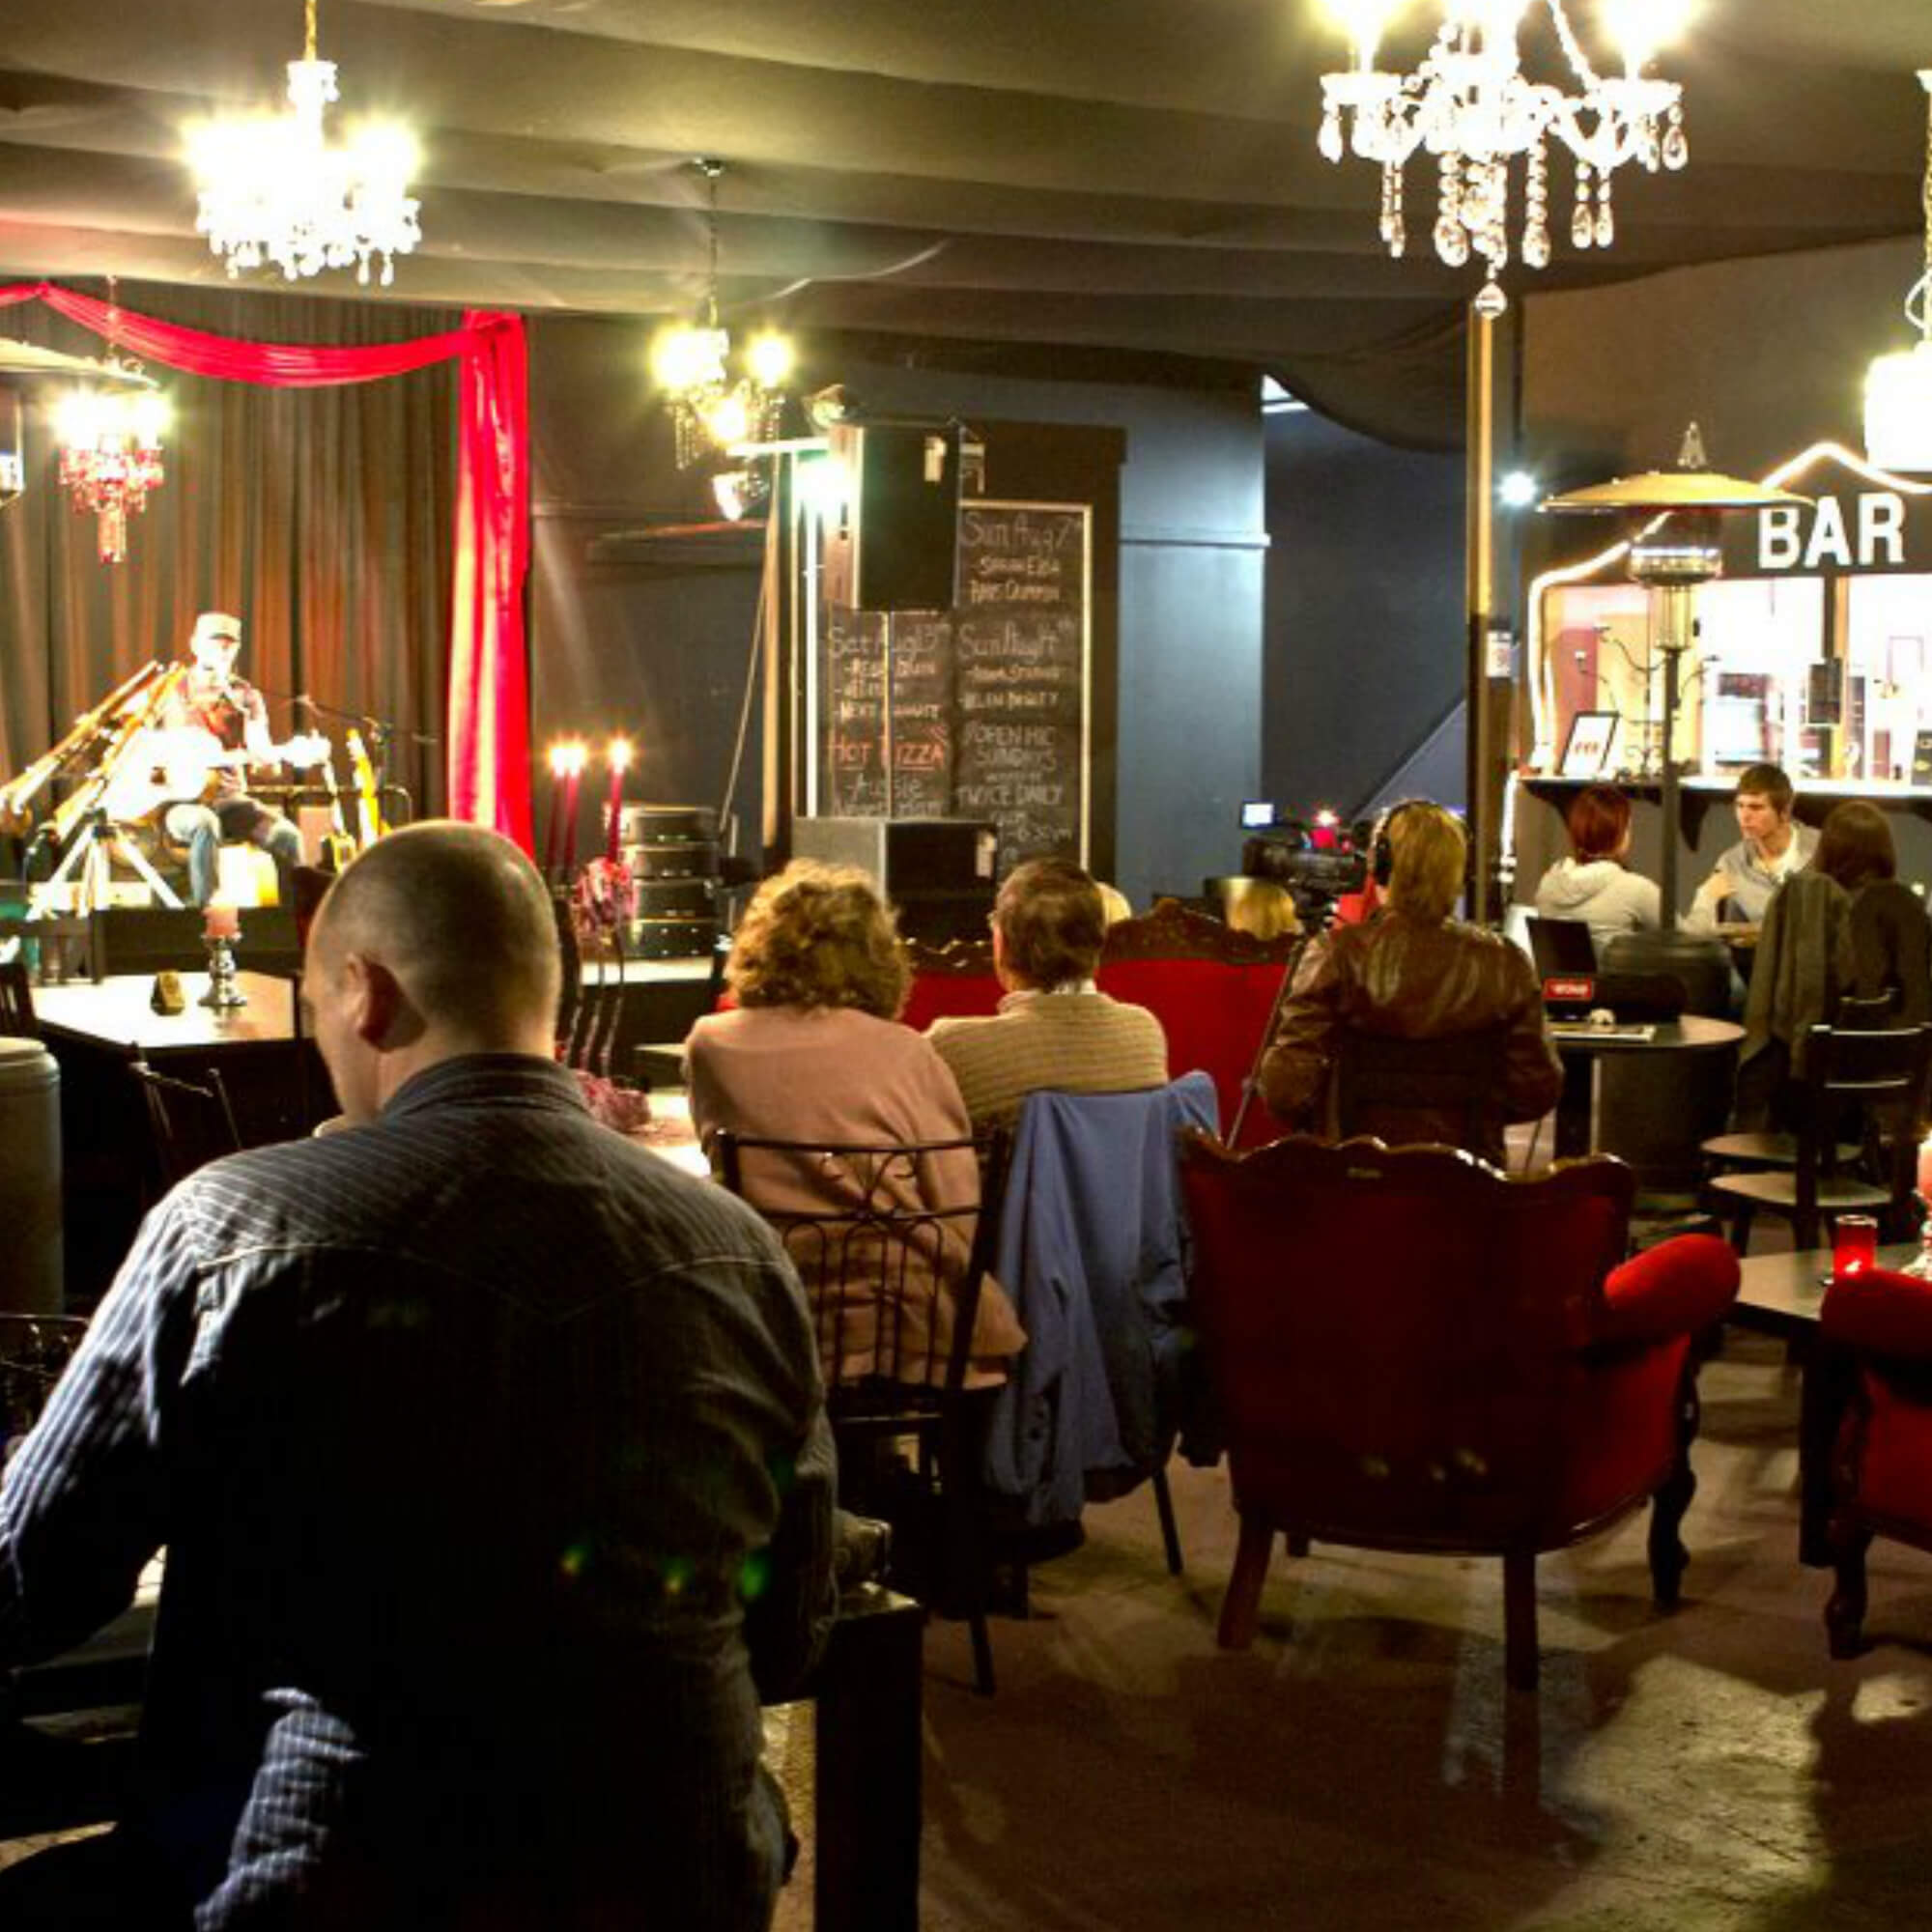 Interior of The Chandelier Room Live Music Venue